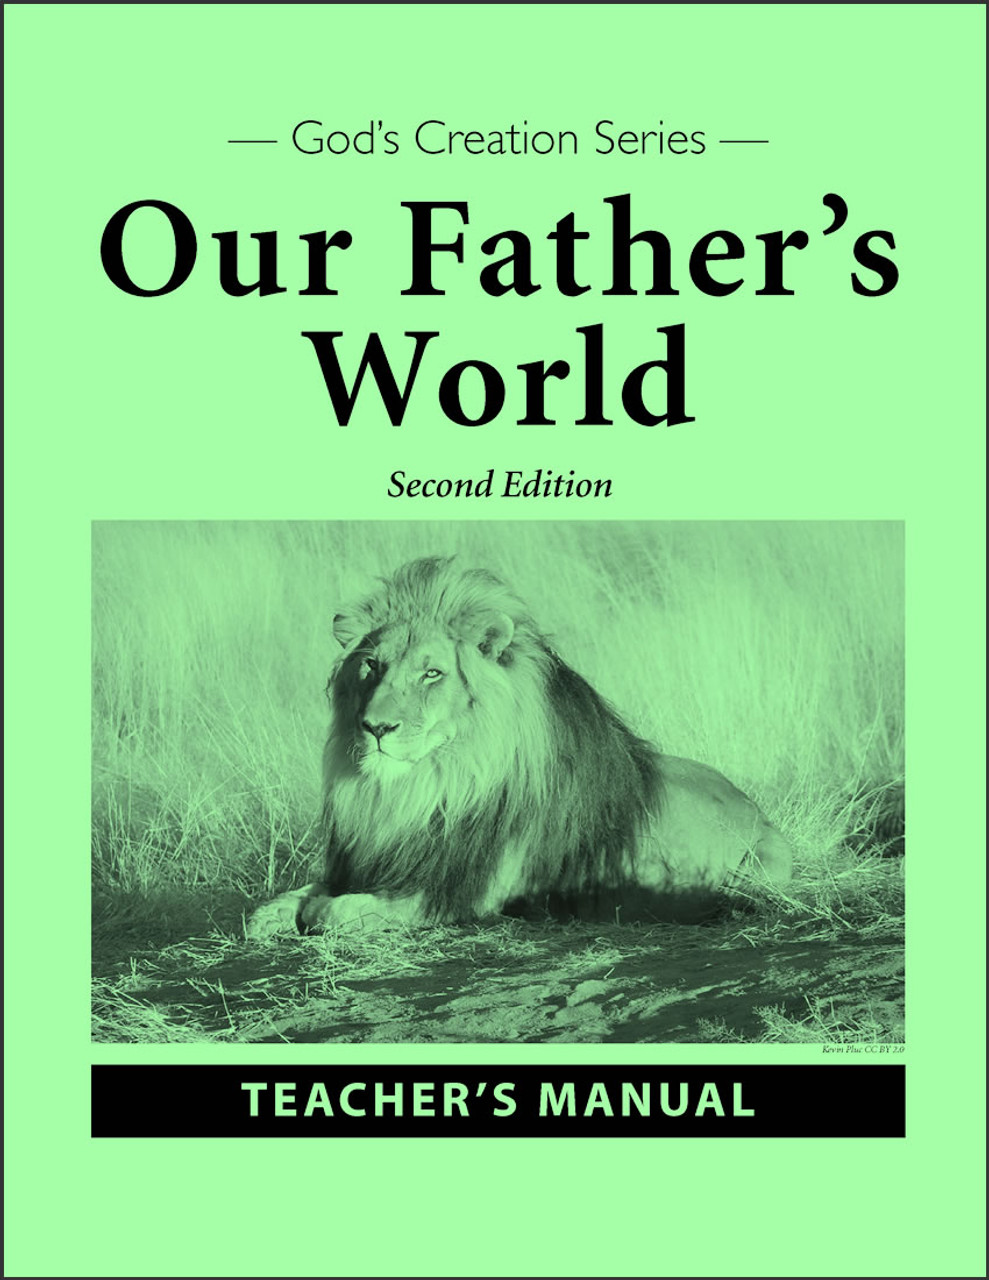 Our Father's World, 2nd edition - Teacher's Manual